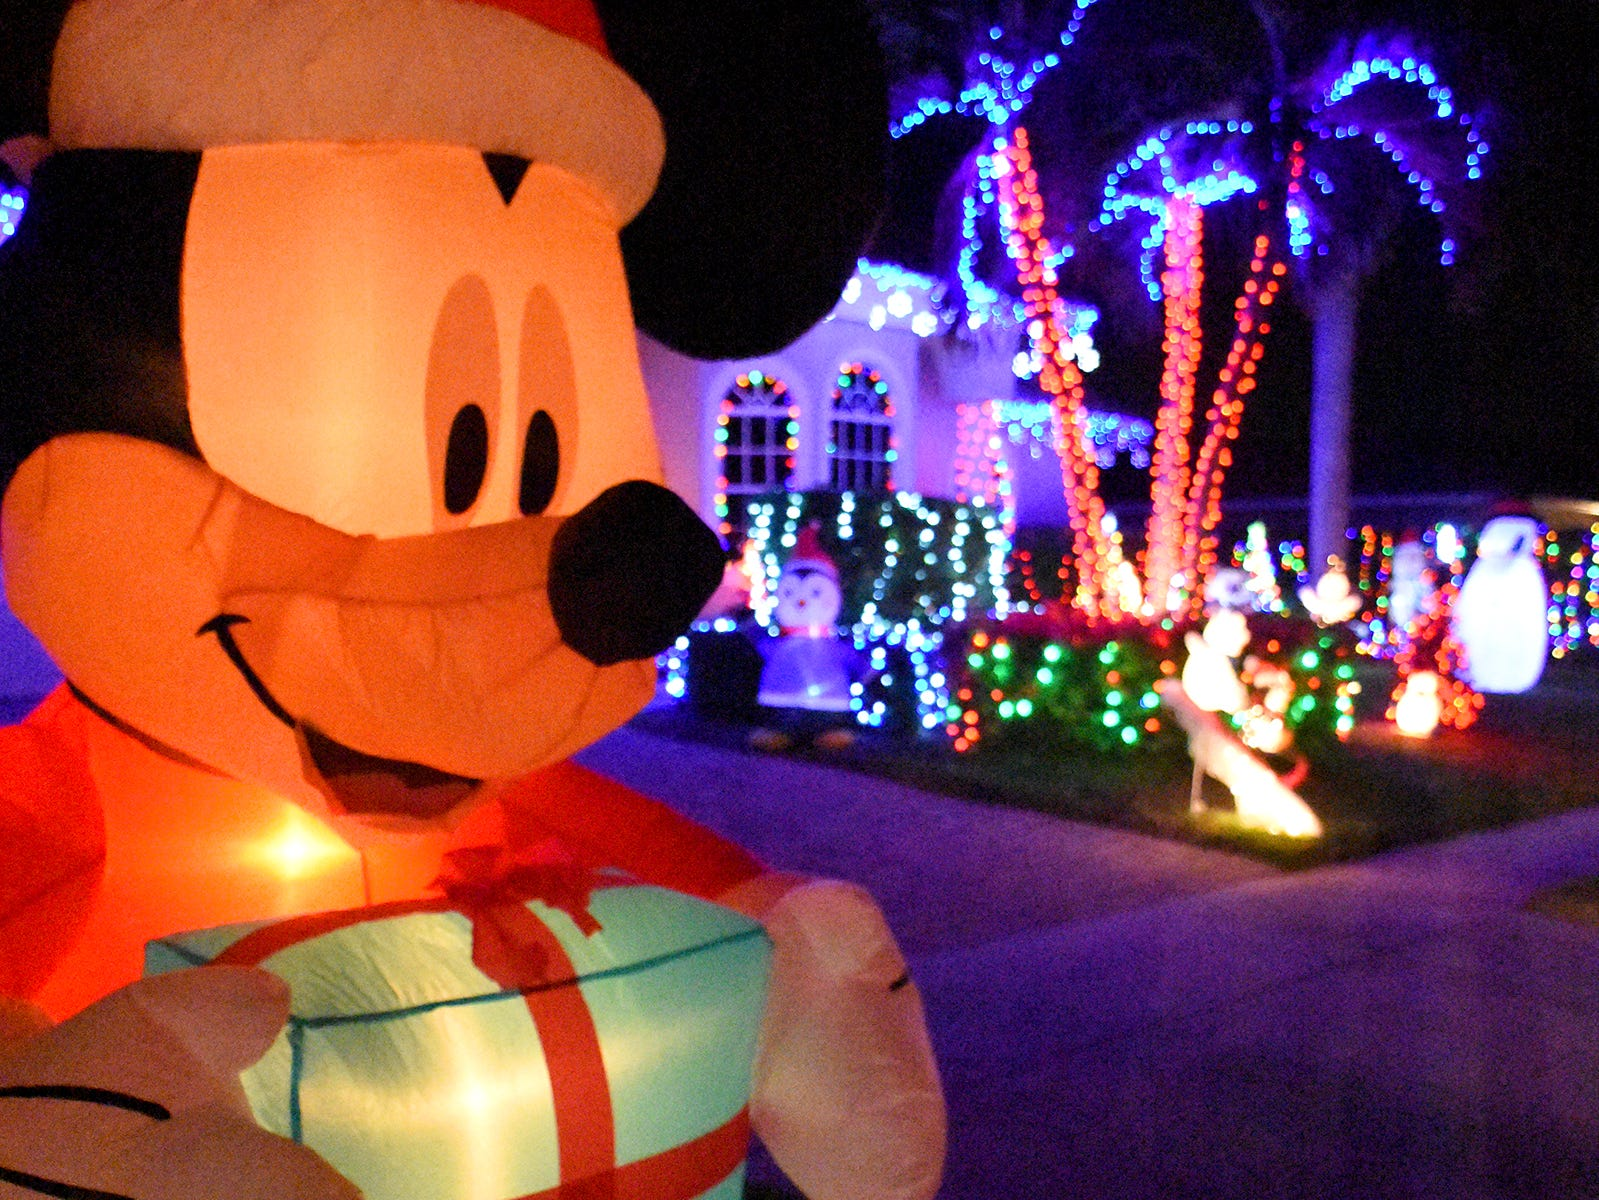 Inflatables complement a house and its yard lights during the judging of the annual Christmas Home Decorating Contest on Friday night.